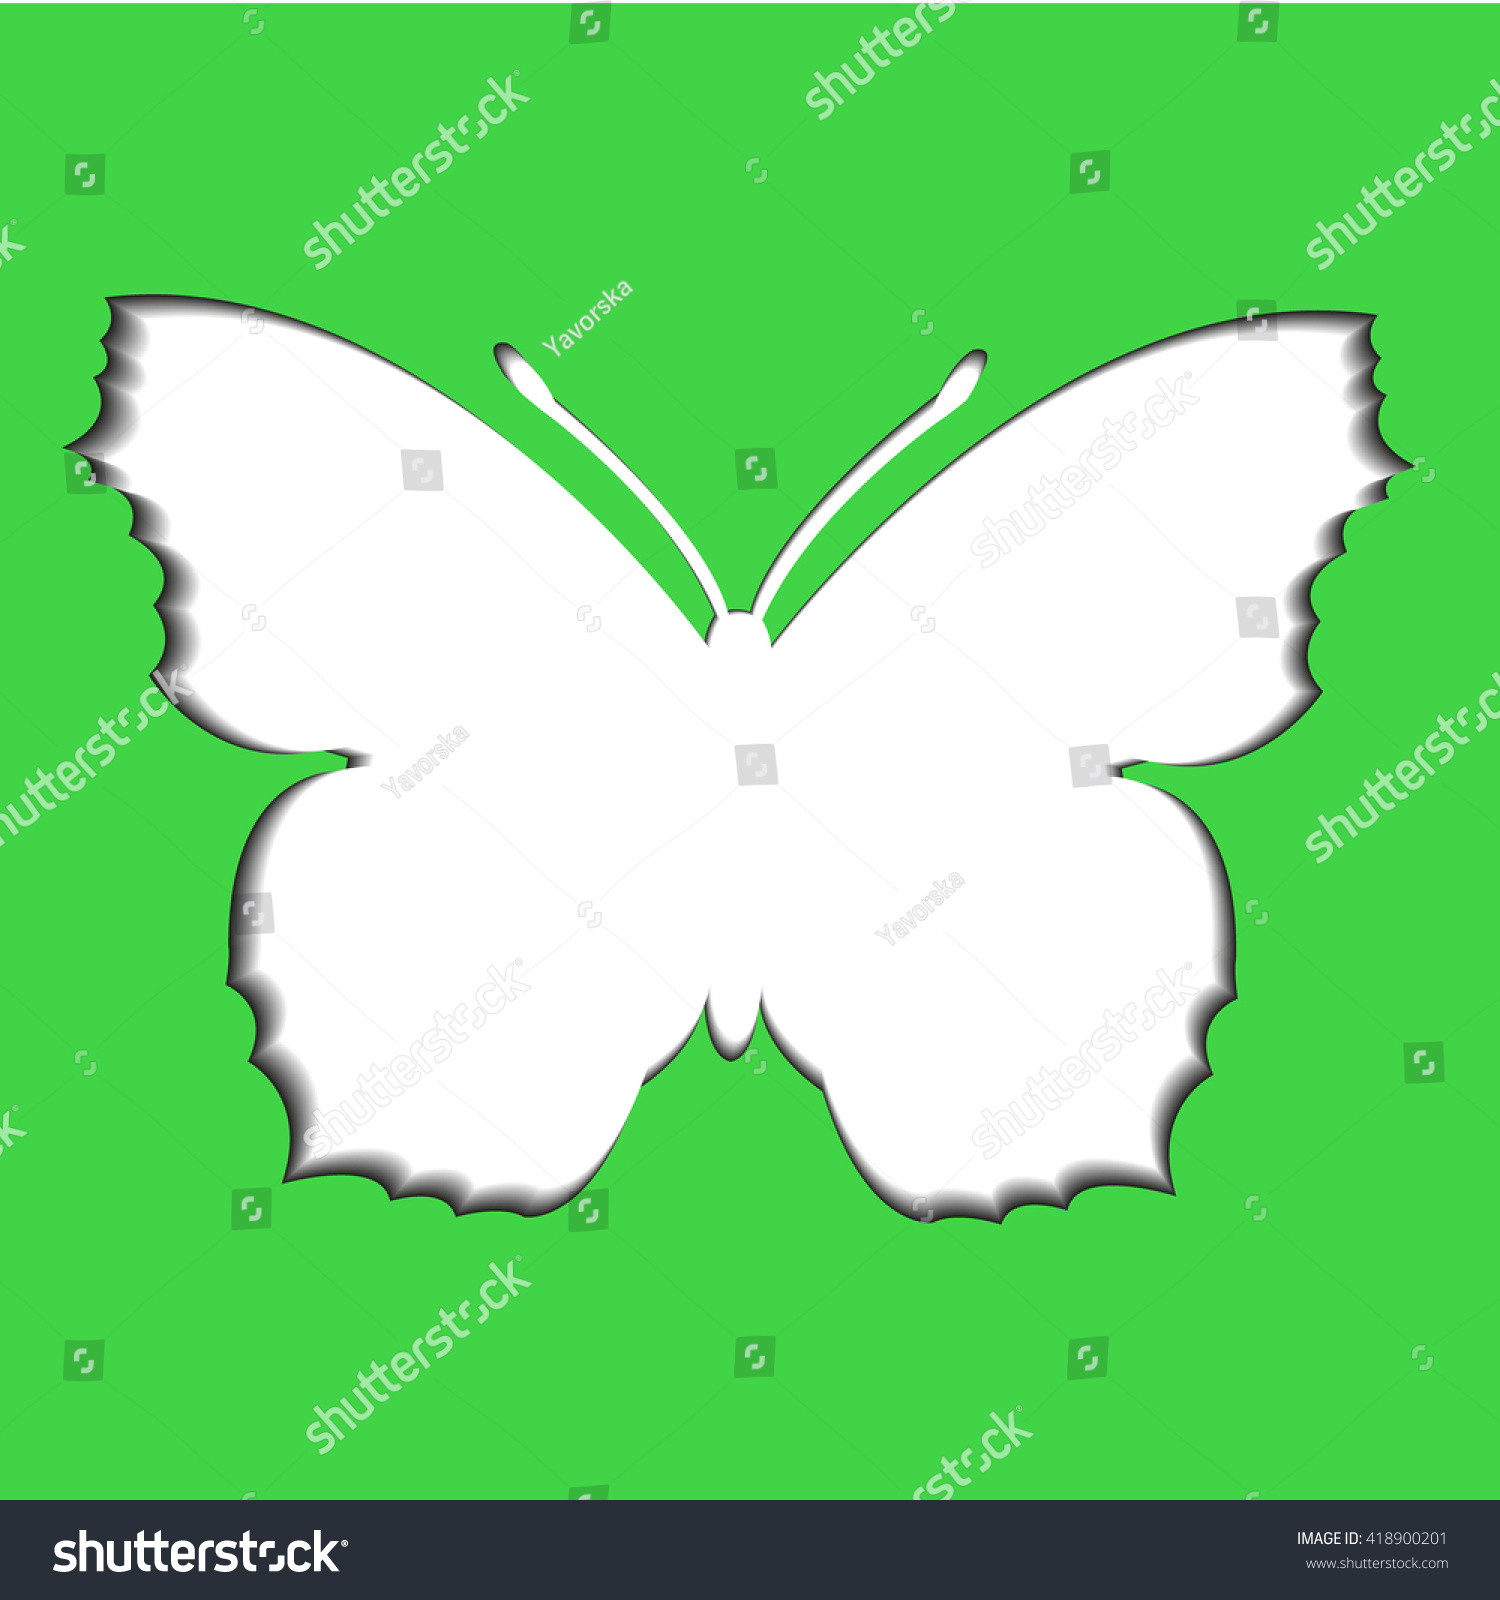 Vector butterfly background butterfly poster butterfly stock vector of butterfly background butterfly poster butterfly symbol or icon butterfly logo biocorpaavc Image collections